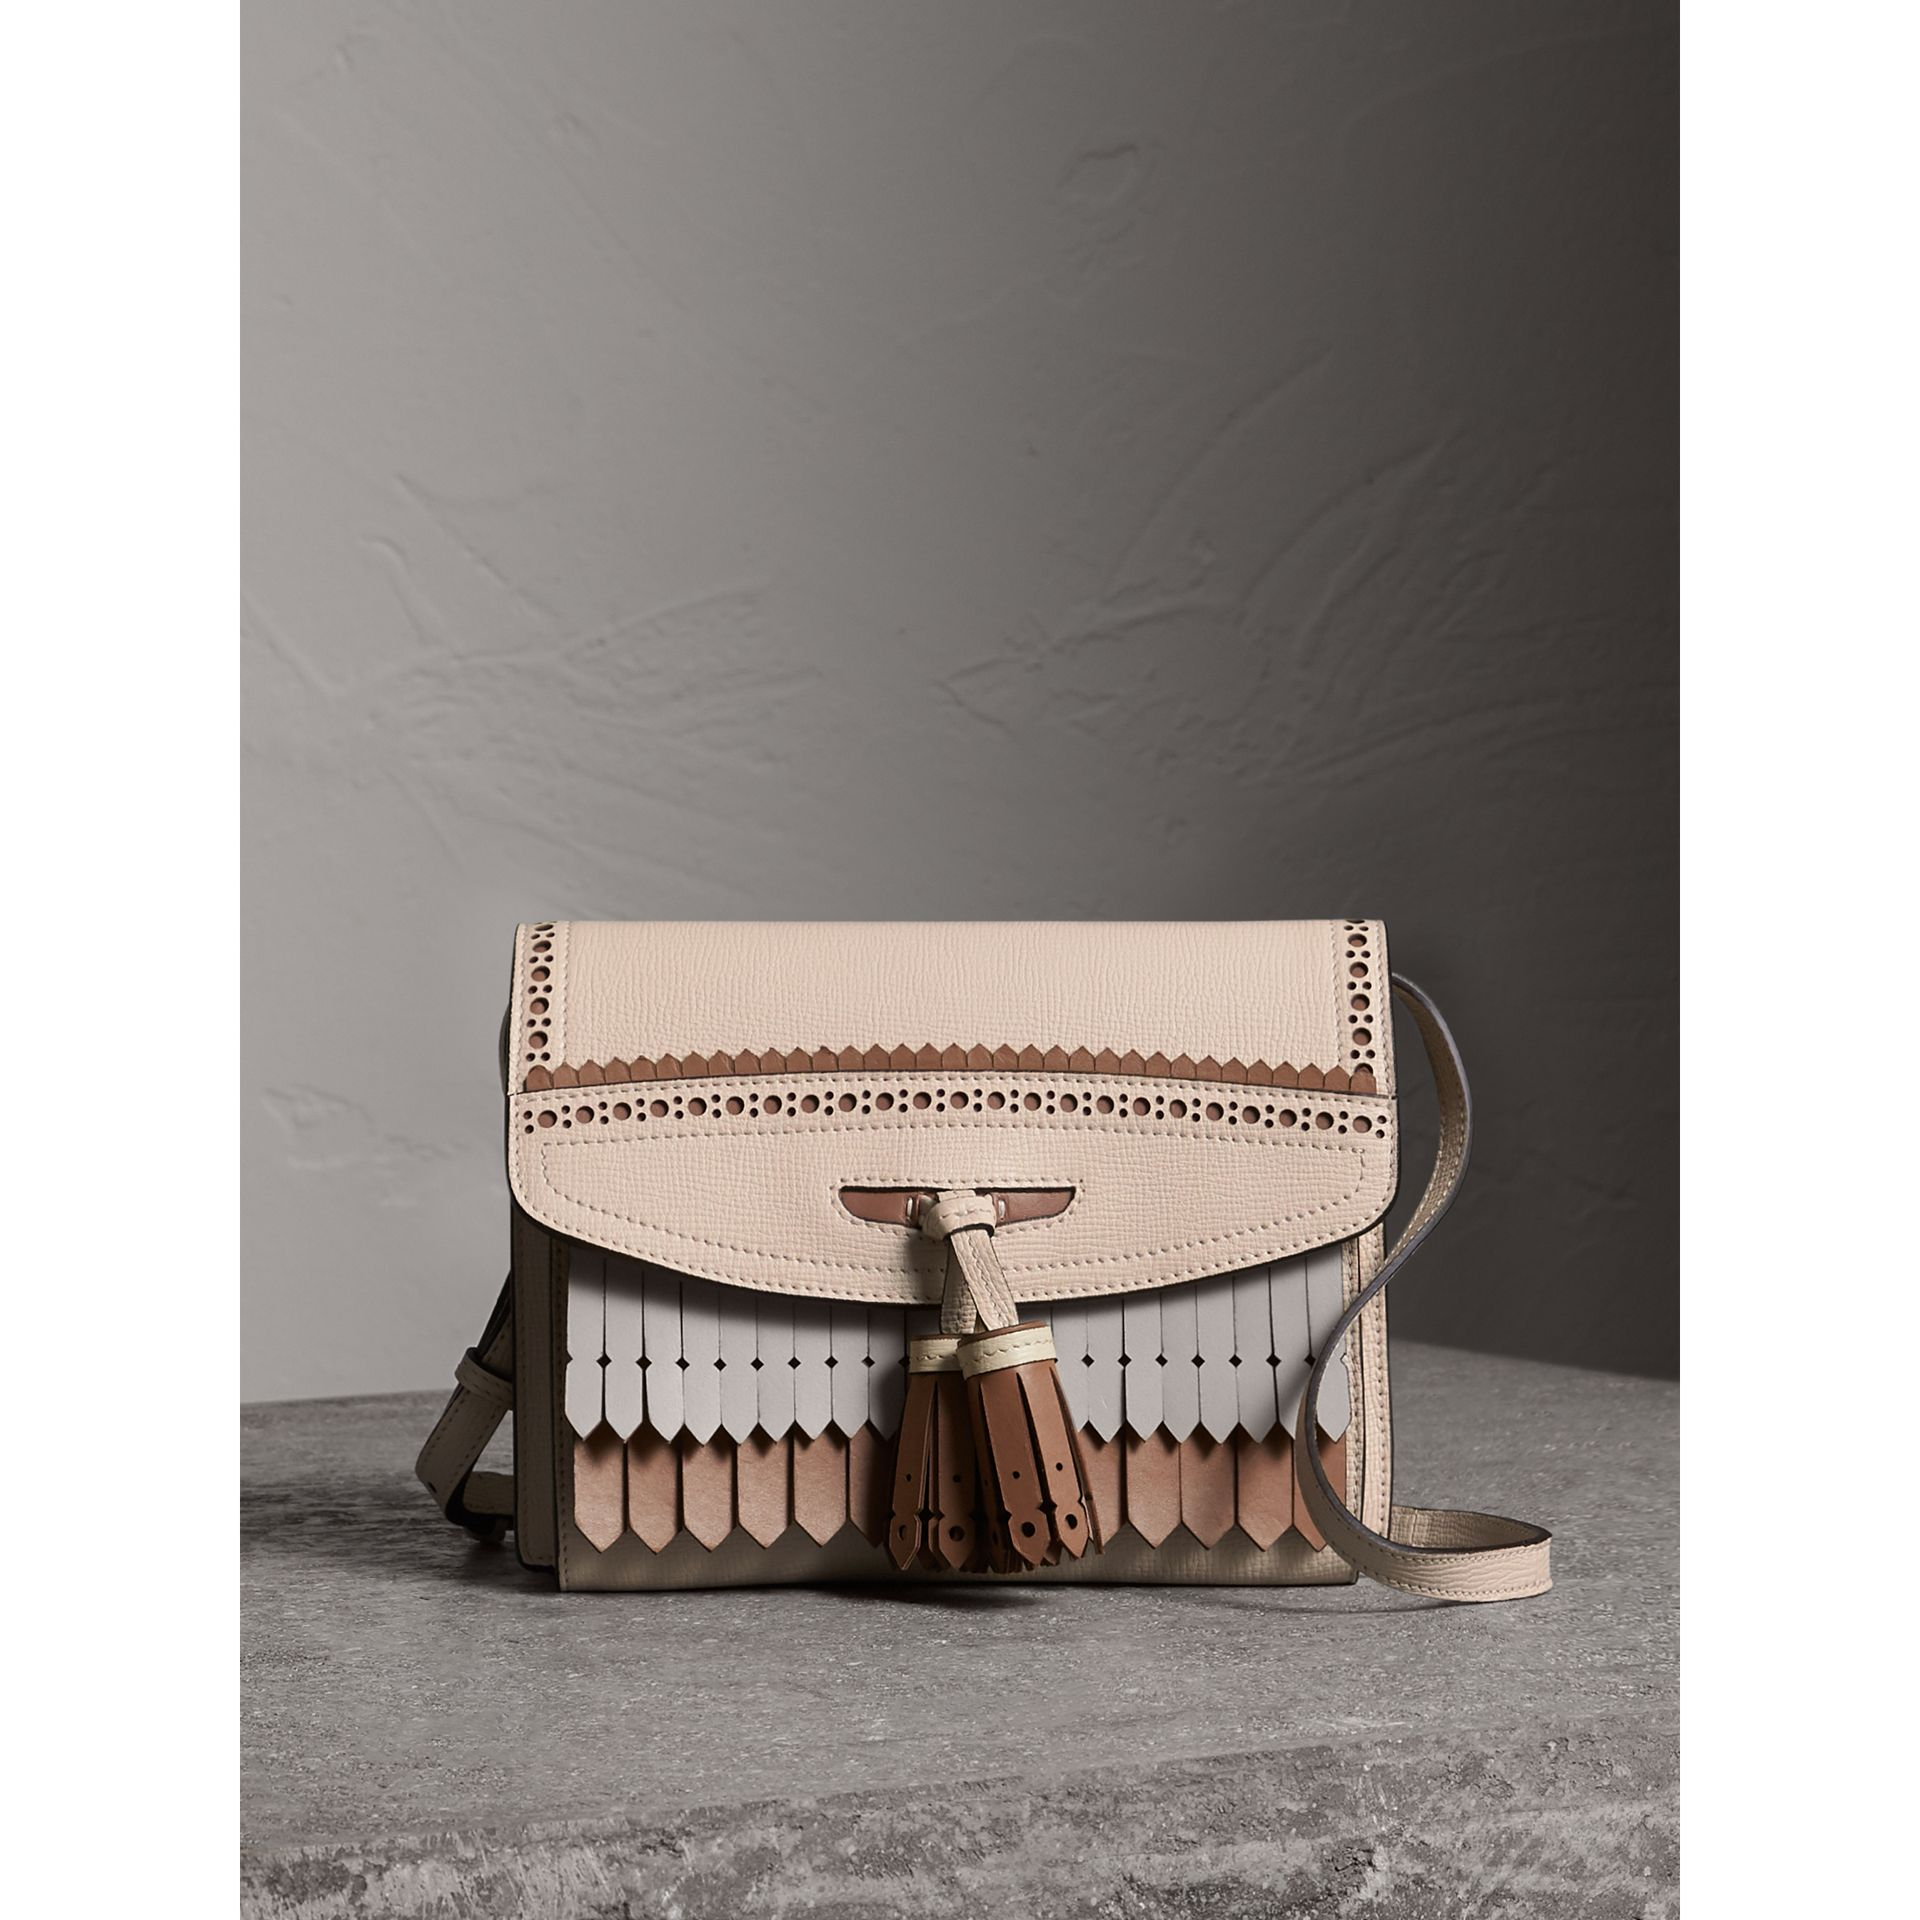 Brogue and Fringe Detail Leather Crossbody Bag in Limestone - Women | Burberry - gallery image 1